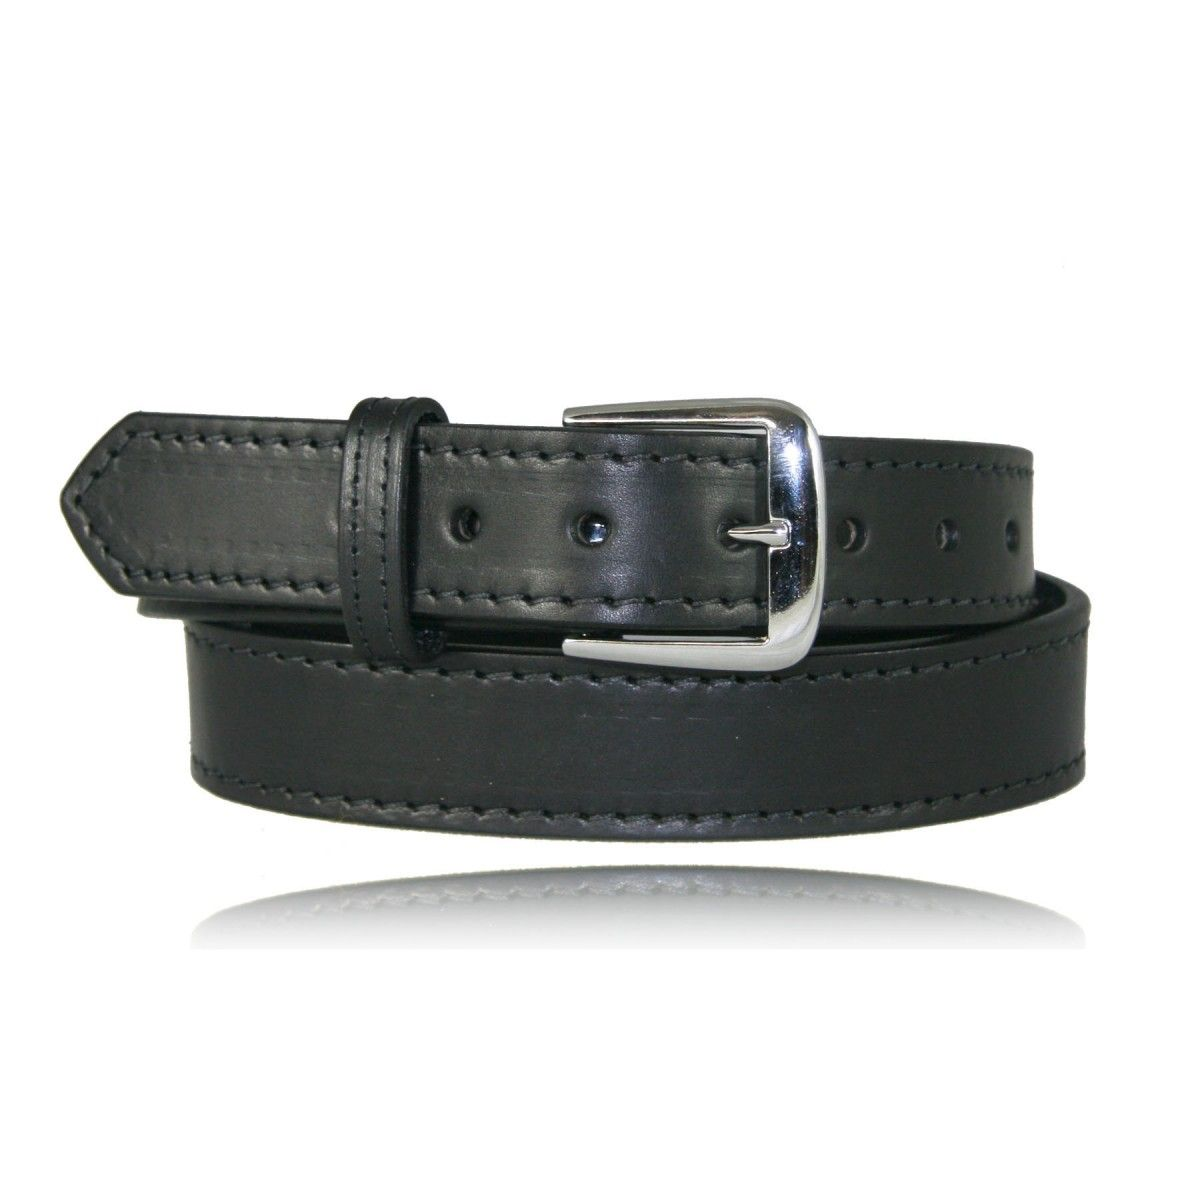 "1 1/2"" Stitched Off Duty Belt"